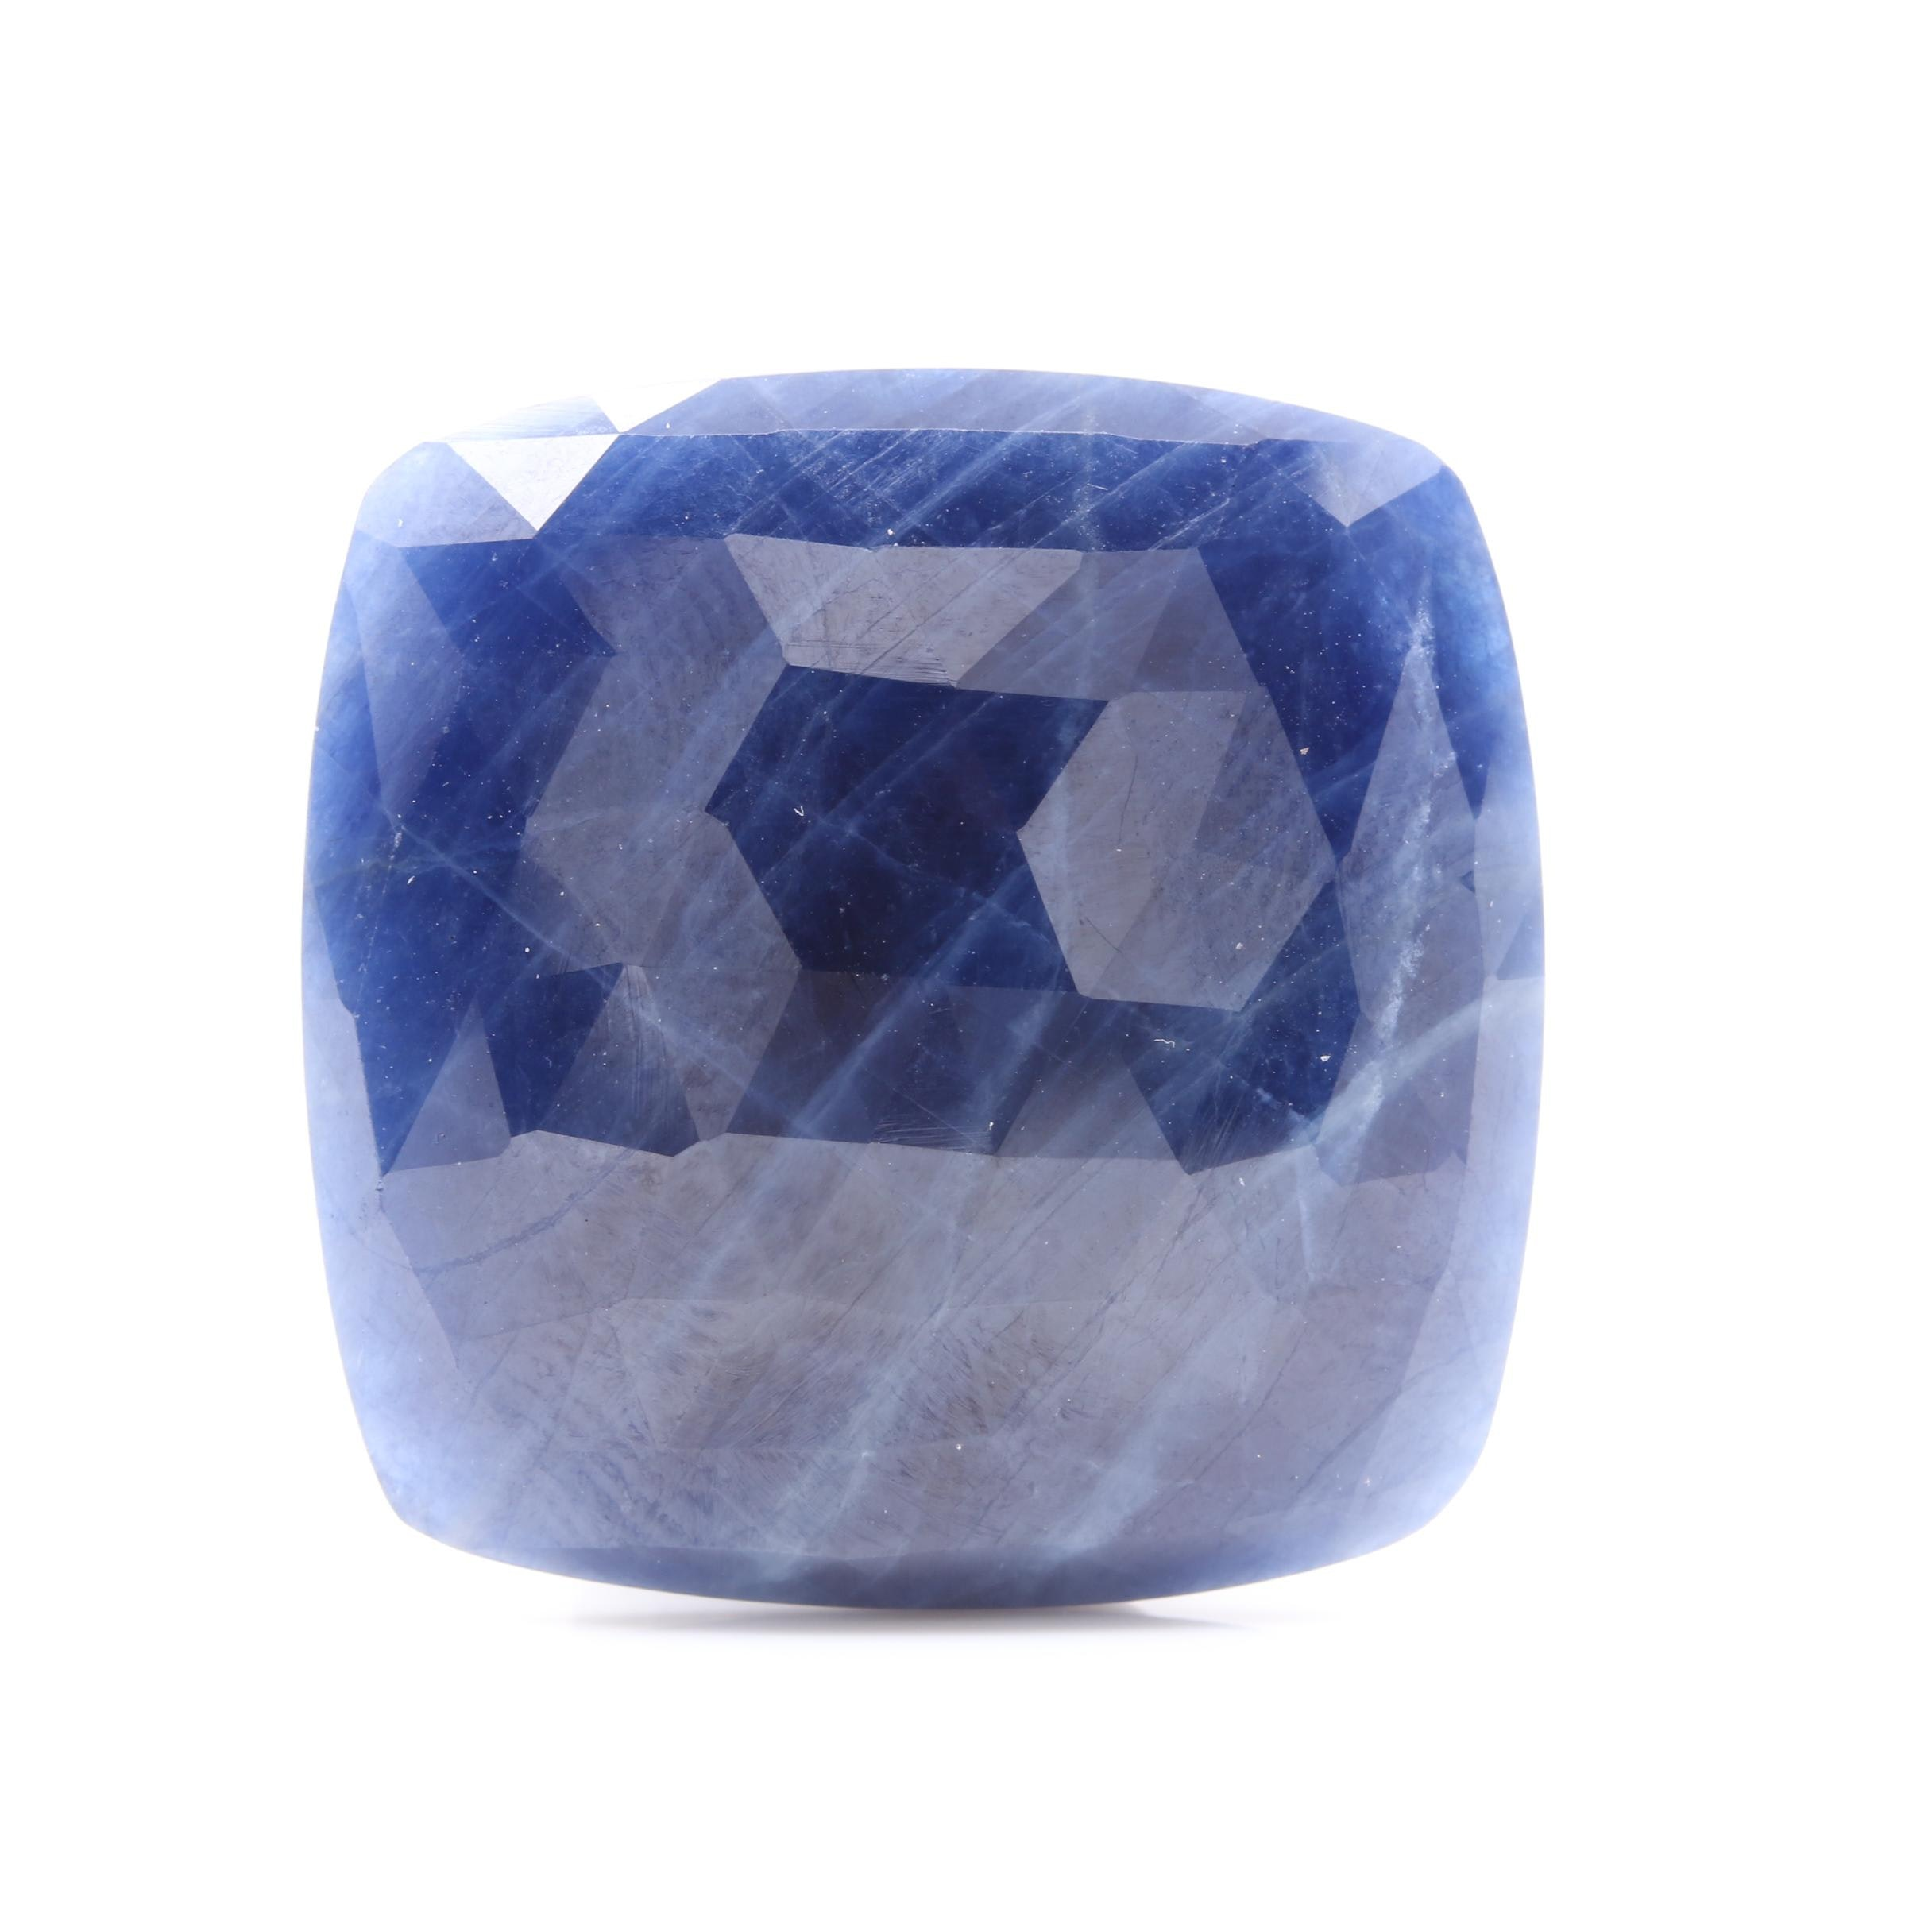 Loose 40.61 CT Untreated Sapphire Including GIA Report